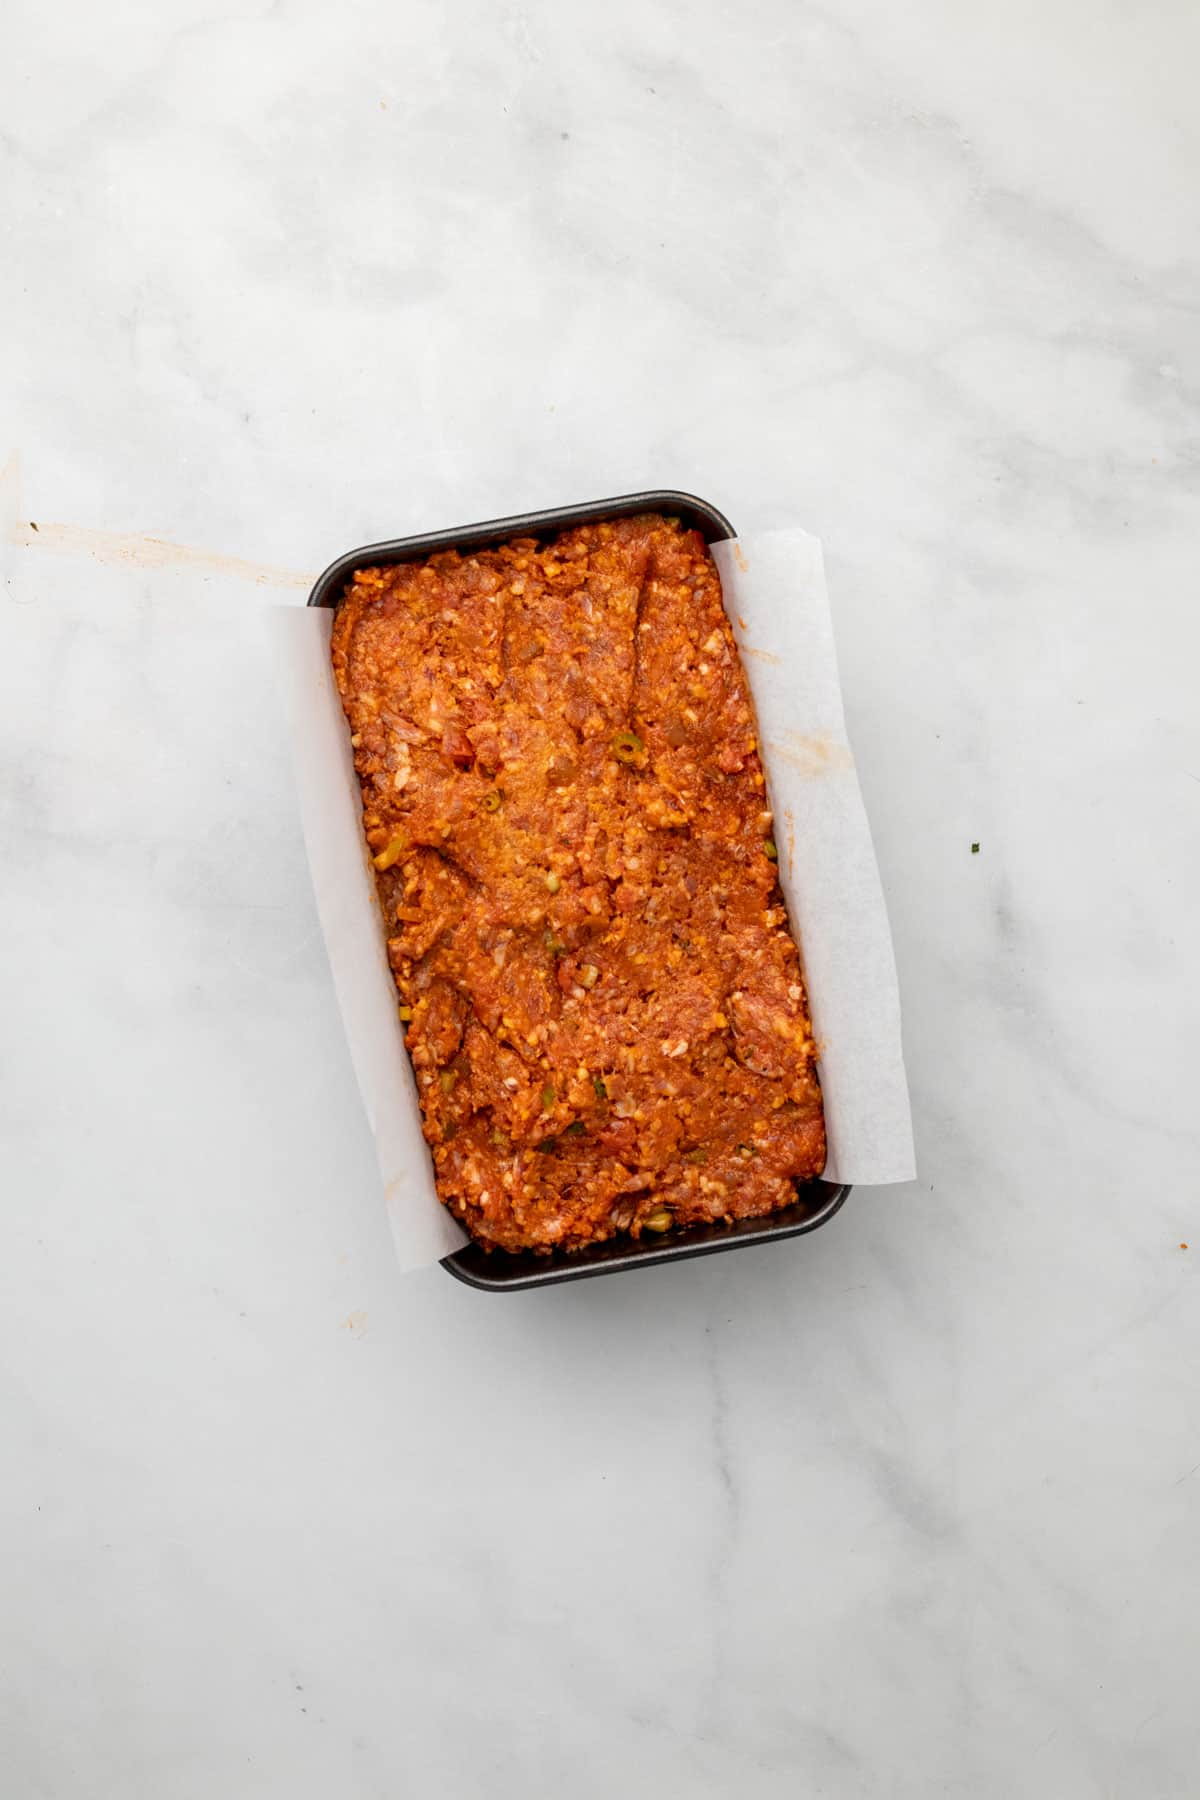 Meatloaf mixture pressed into the loaf pan